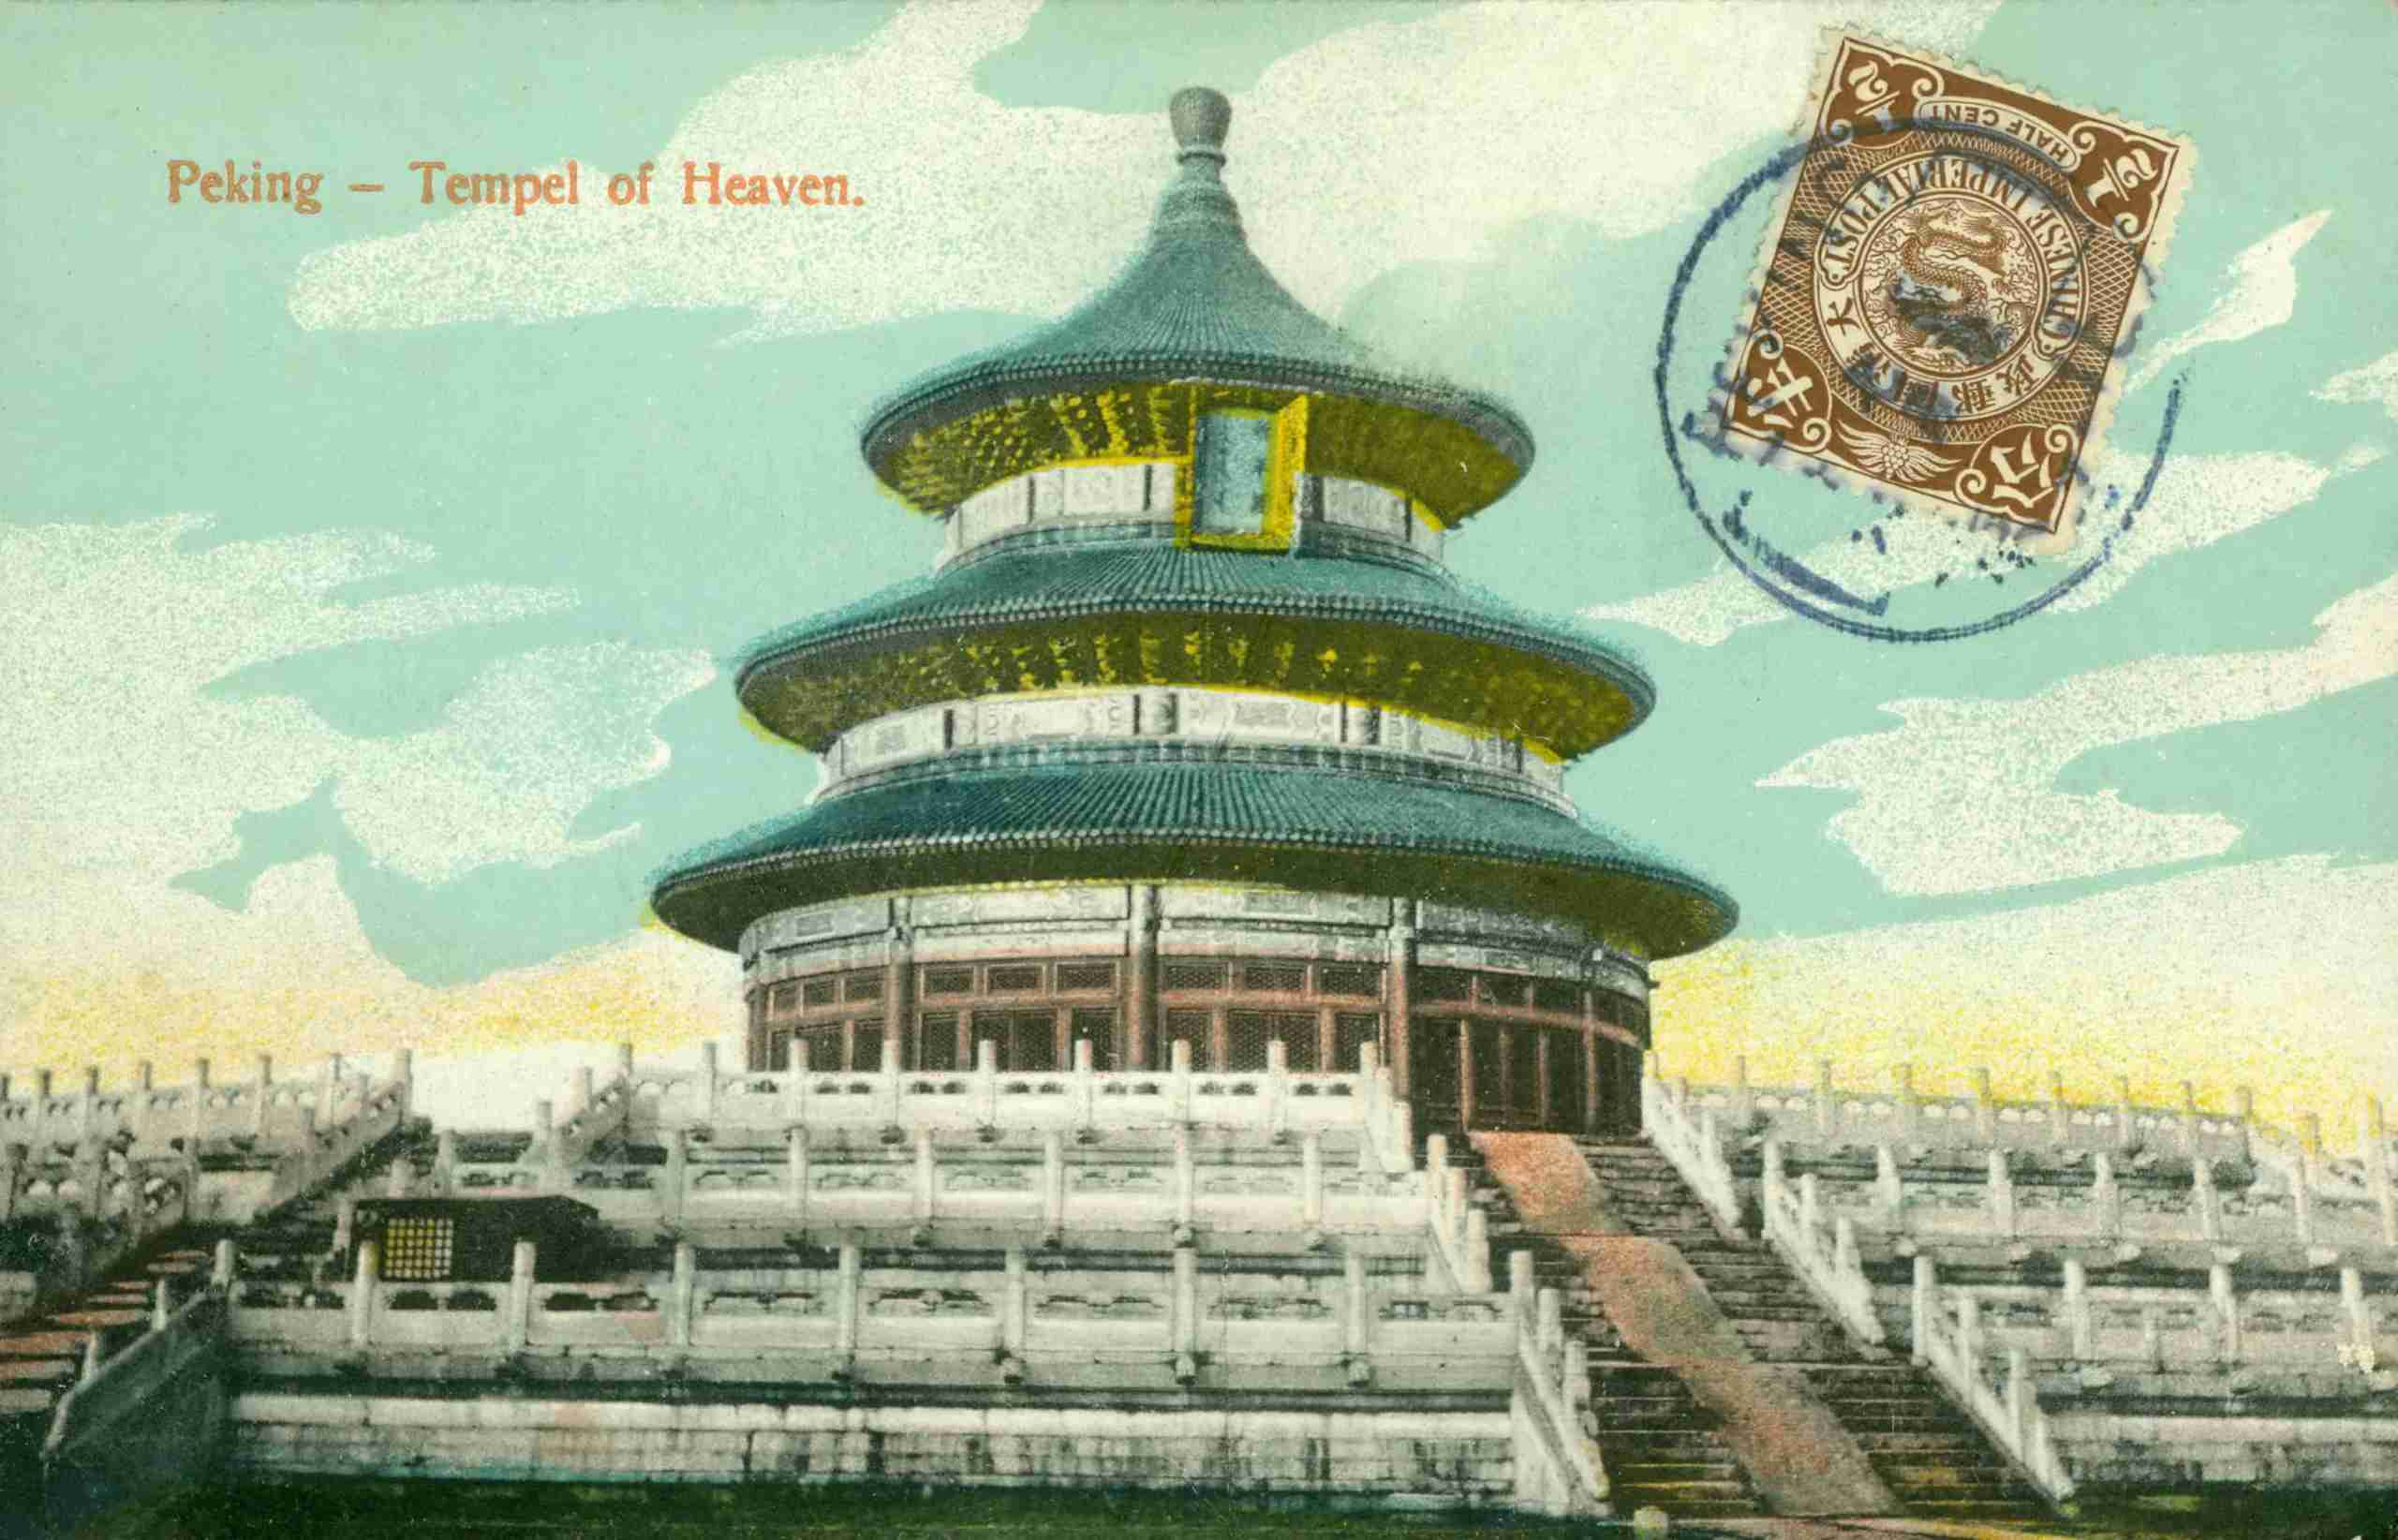 Beijing Temple of Heaven postcard from 1898 scaled